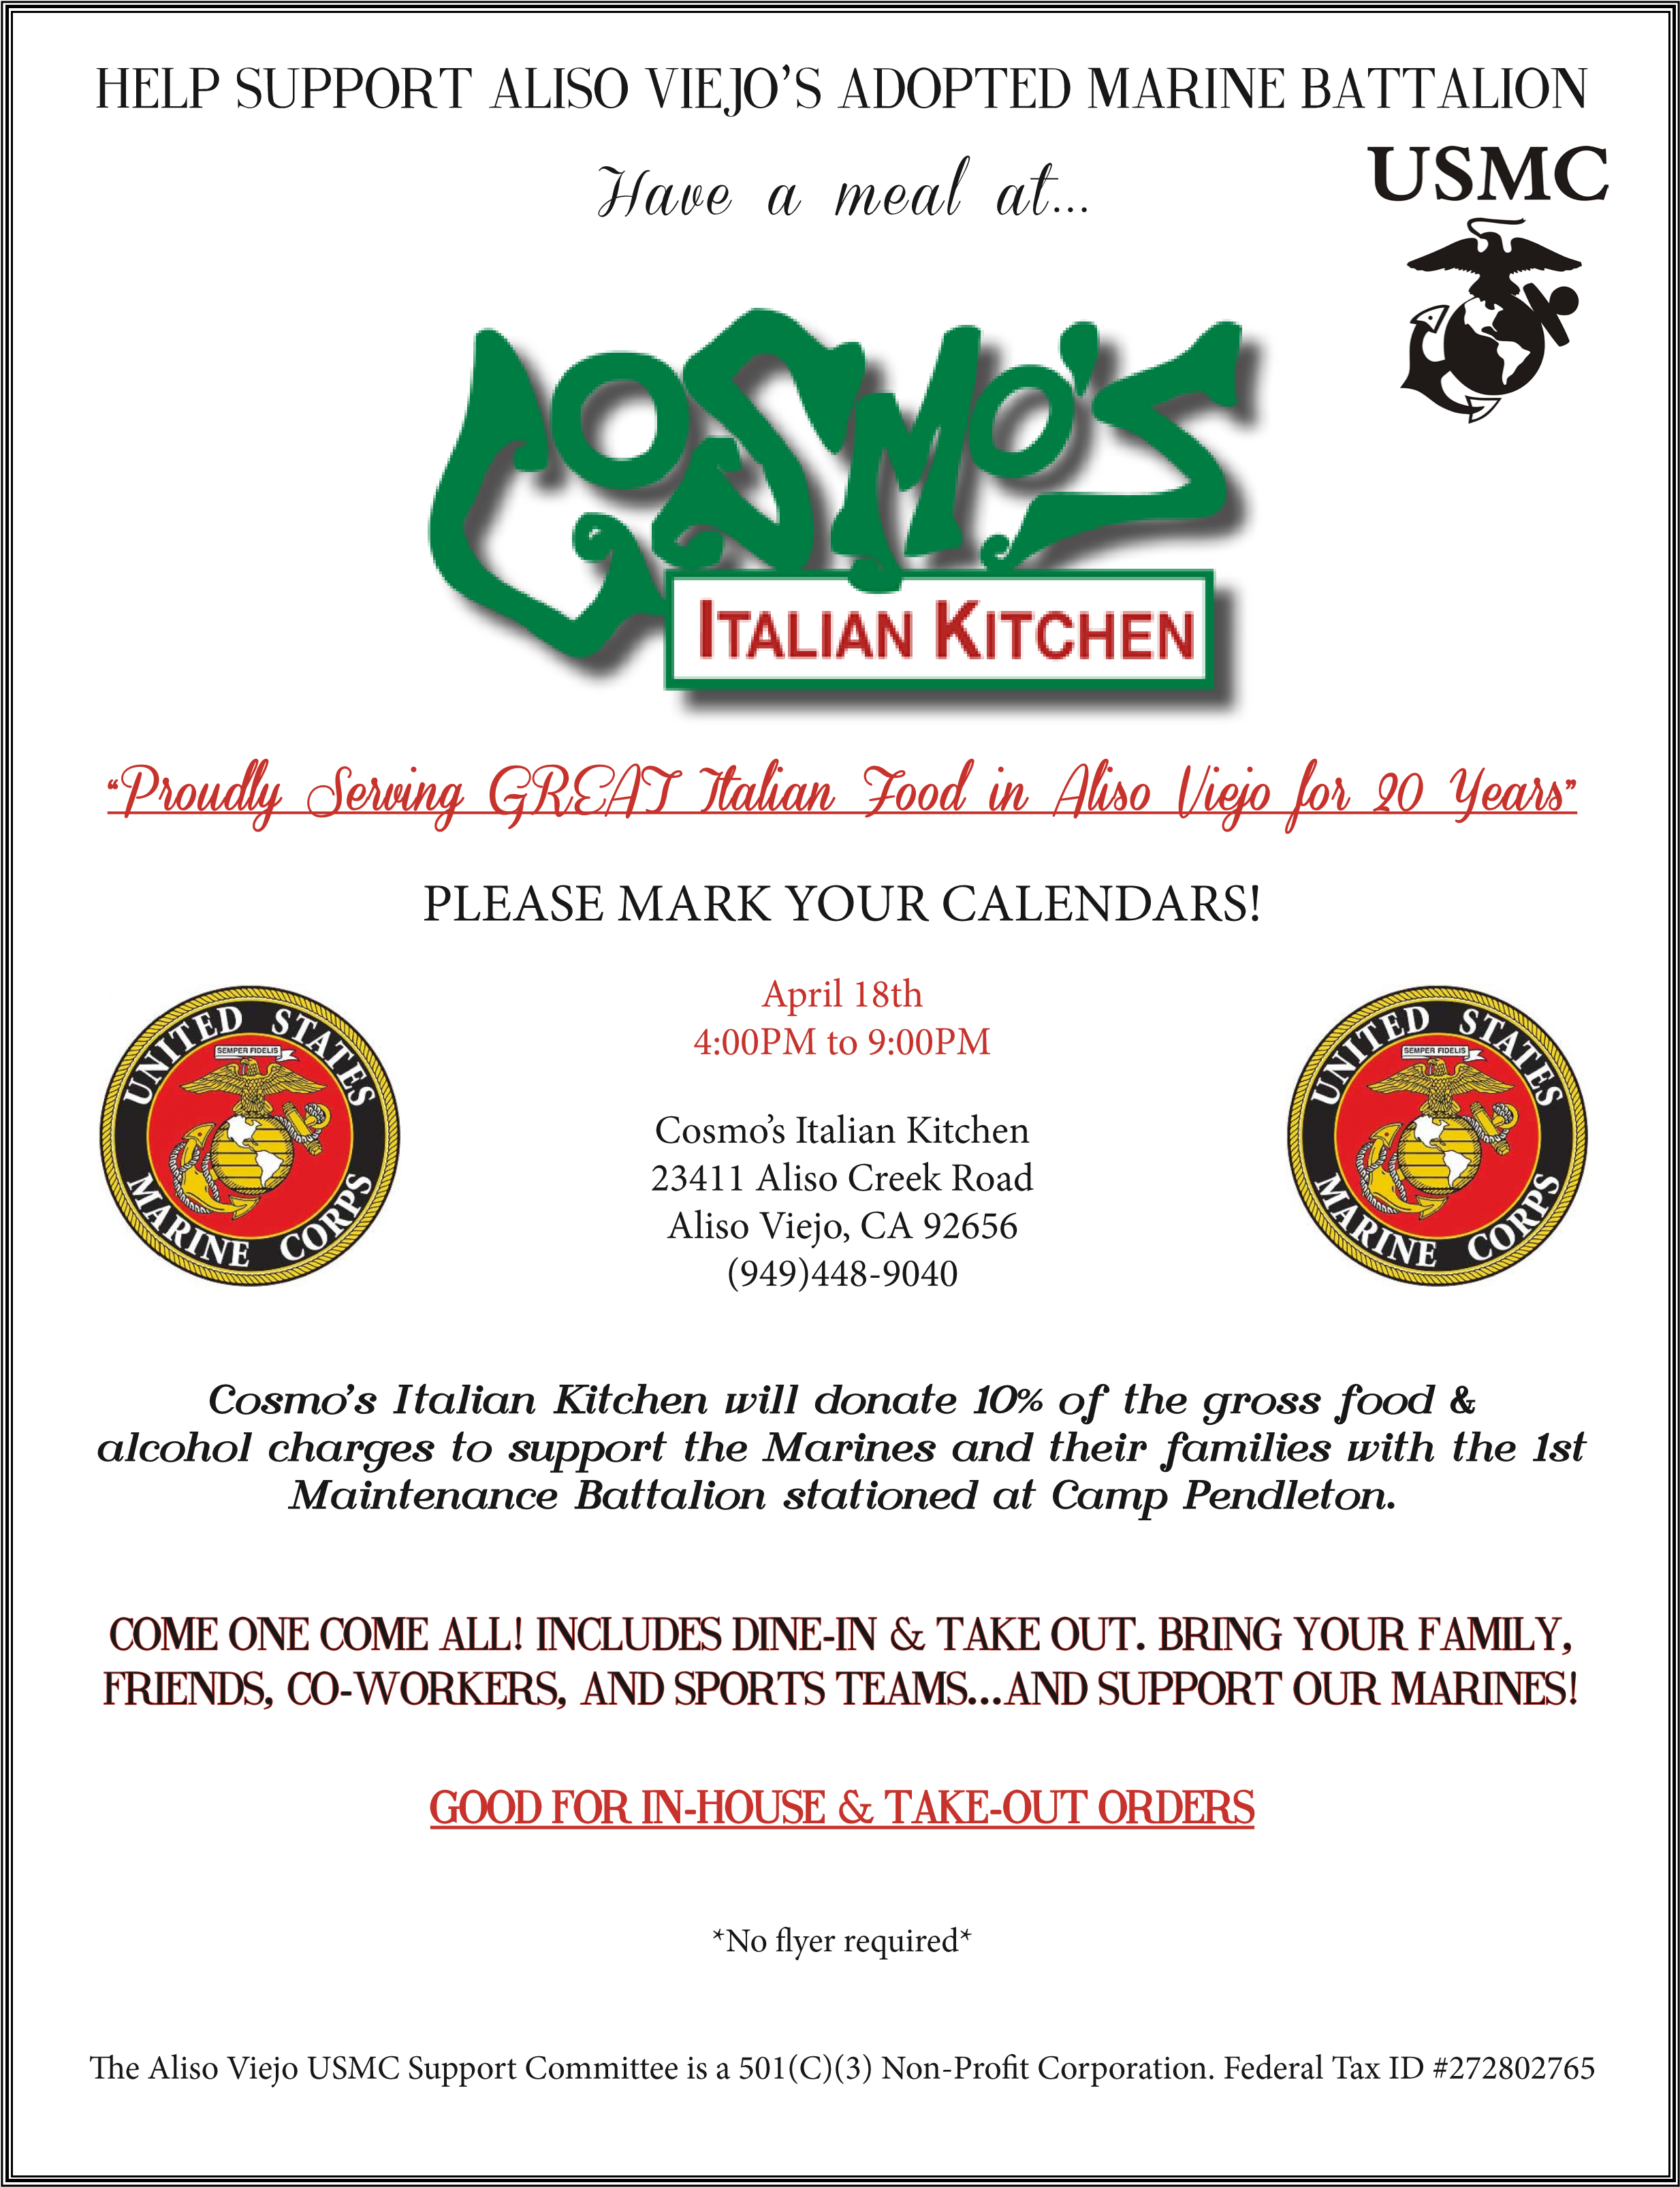 Have A Meal At Cosmo S Italian Kitchen Help Support Aliso Viejo S Adopted Marine Battalion